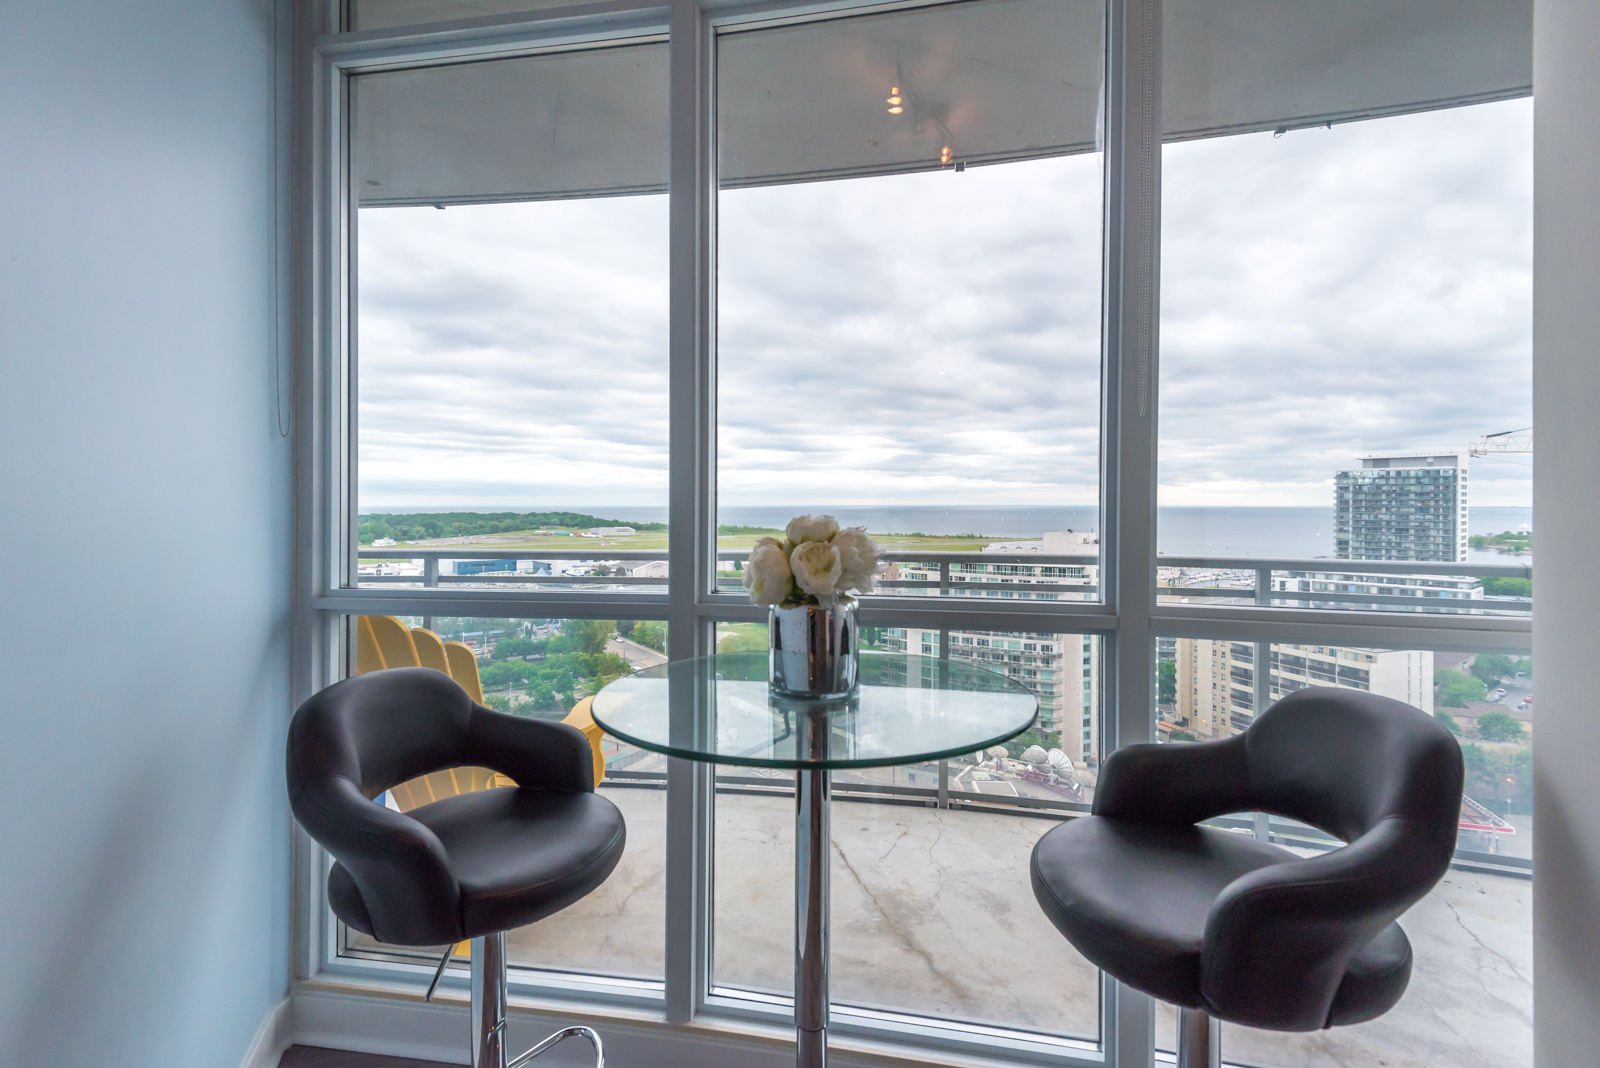 A lovely view of Toronto from the dining room and windows.